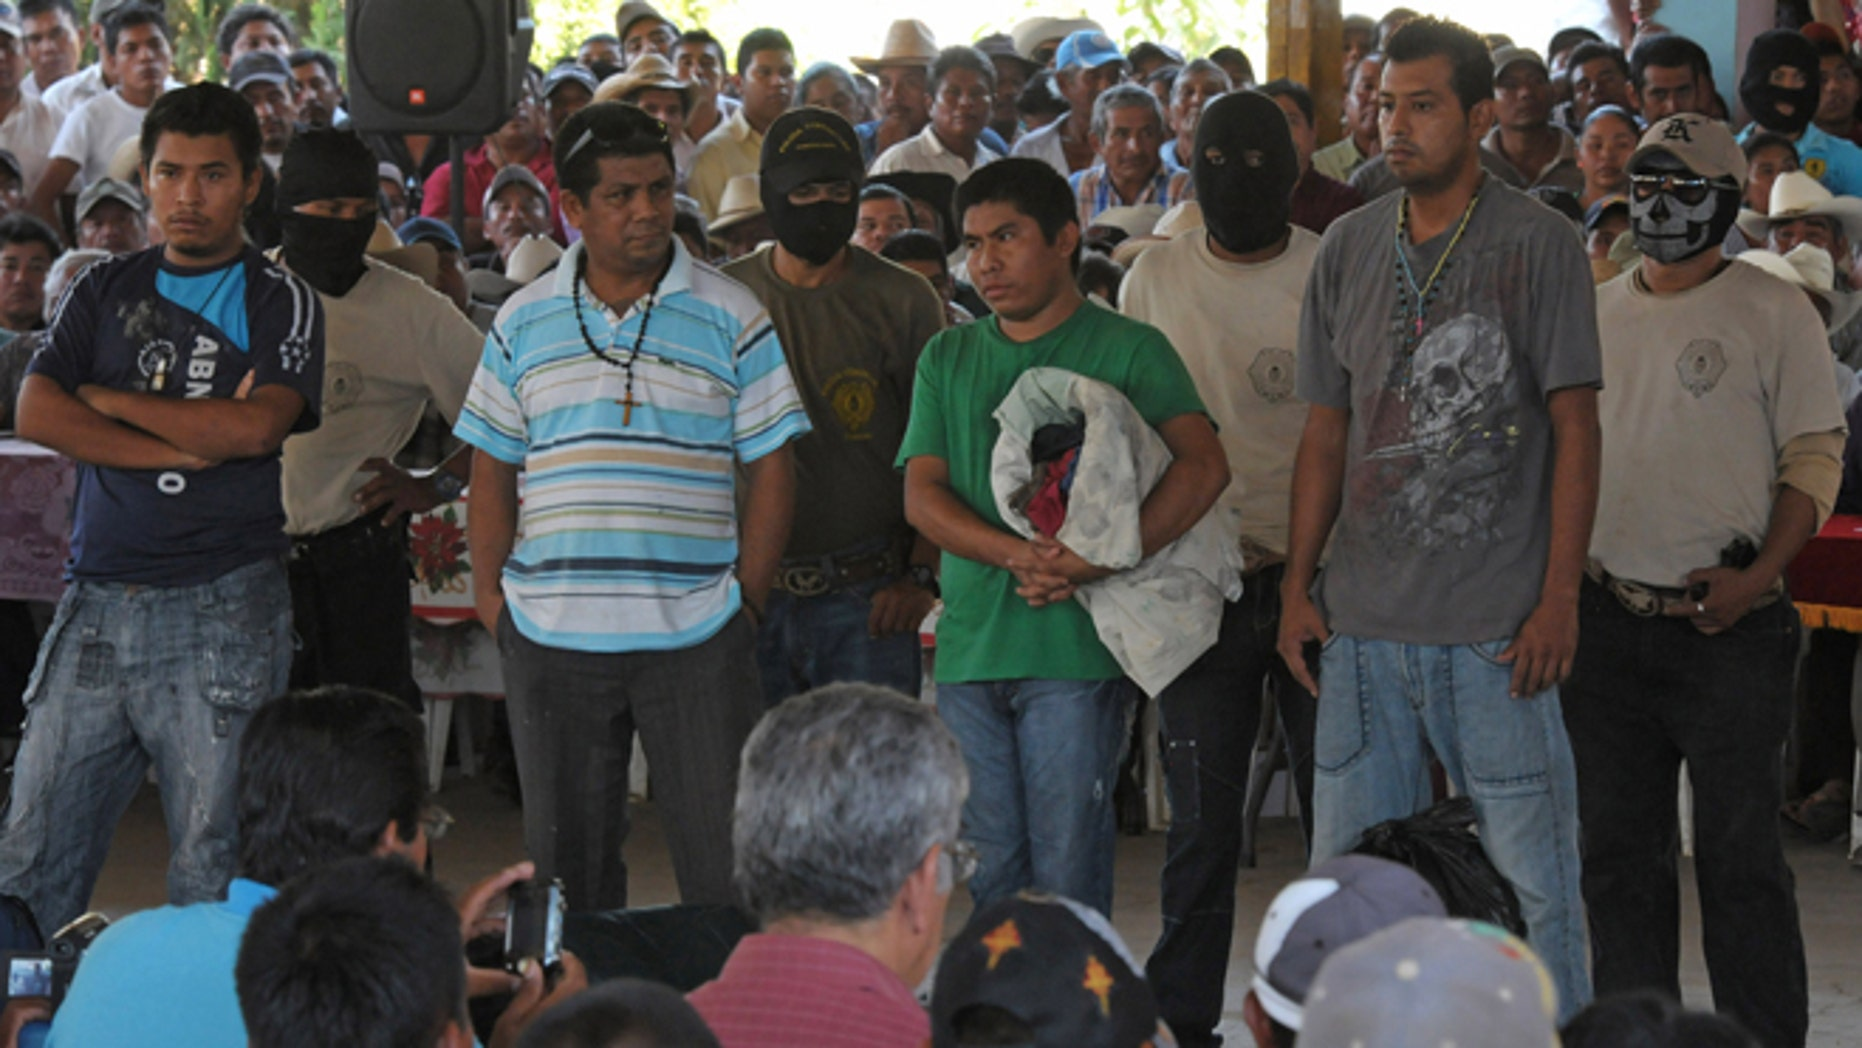 Detained people stand before a community assembly in the town of El Meson, Mexico, Thursday Jan. 31, 2013. Vigilantes who have taken up arms against drug cartel violence and common crime in southern Mexico brought charges ranging from organized crime to kidnapping and extortion against 50 men and three women who they have been holding prisoner at improvised jails, in some cases for weeks. (AP Photo/Bernandino Hernandez)